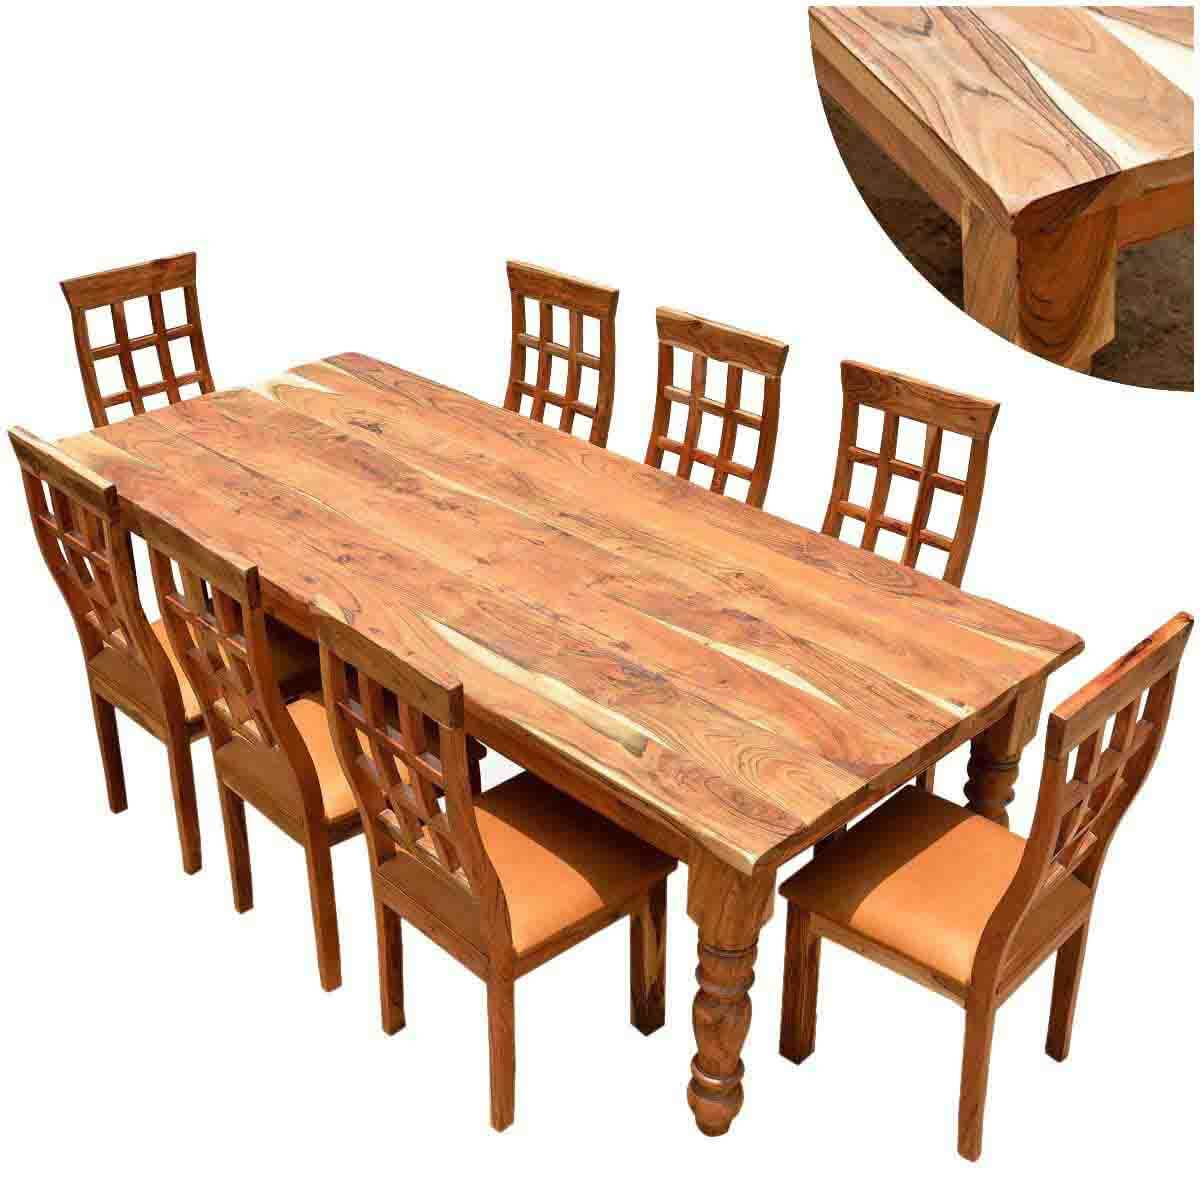 Rustic dining table and chair sets sierra living concepts for Solid wood dining table sets